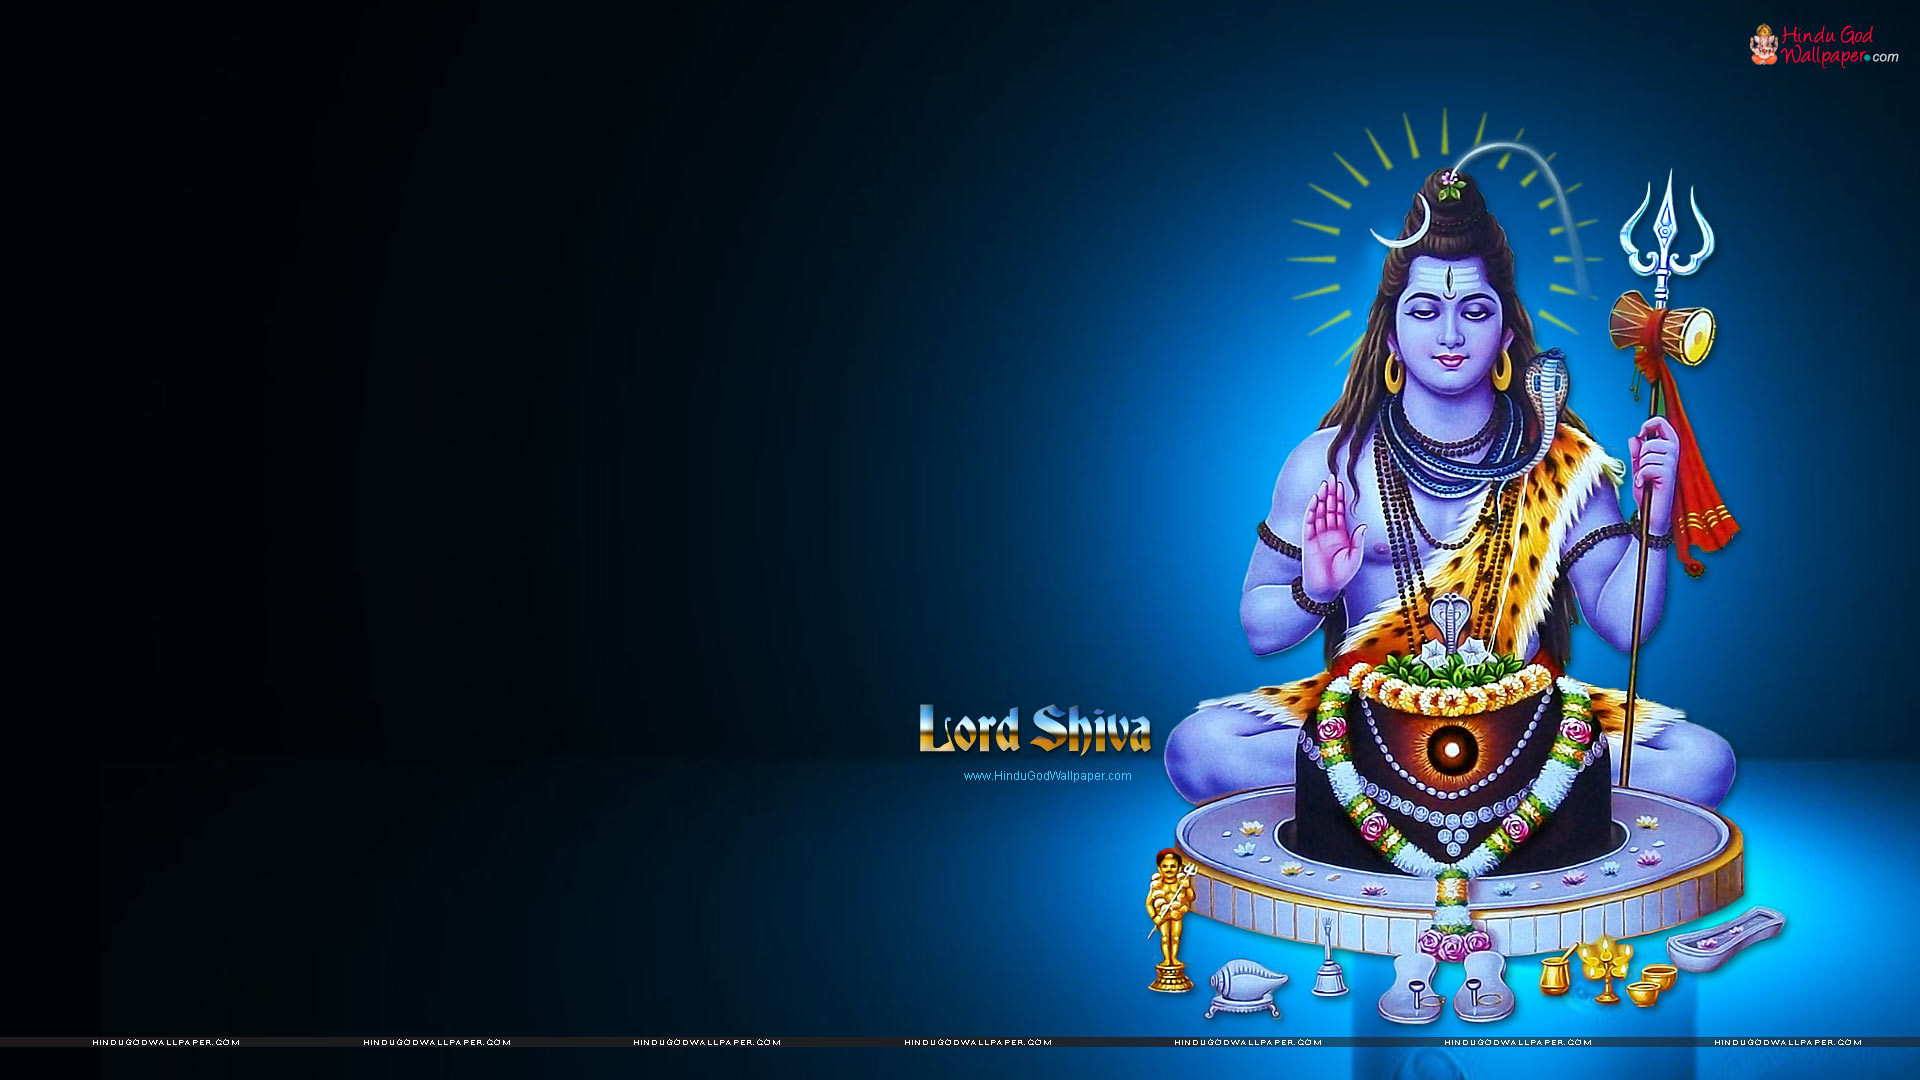 Lord Shiva Hd Wallpapers 1920x1080 Download Apfiwingsu West Virginia